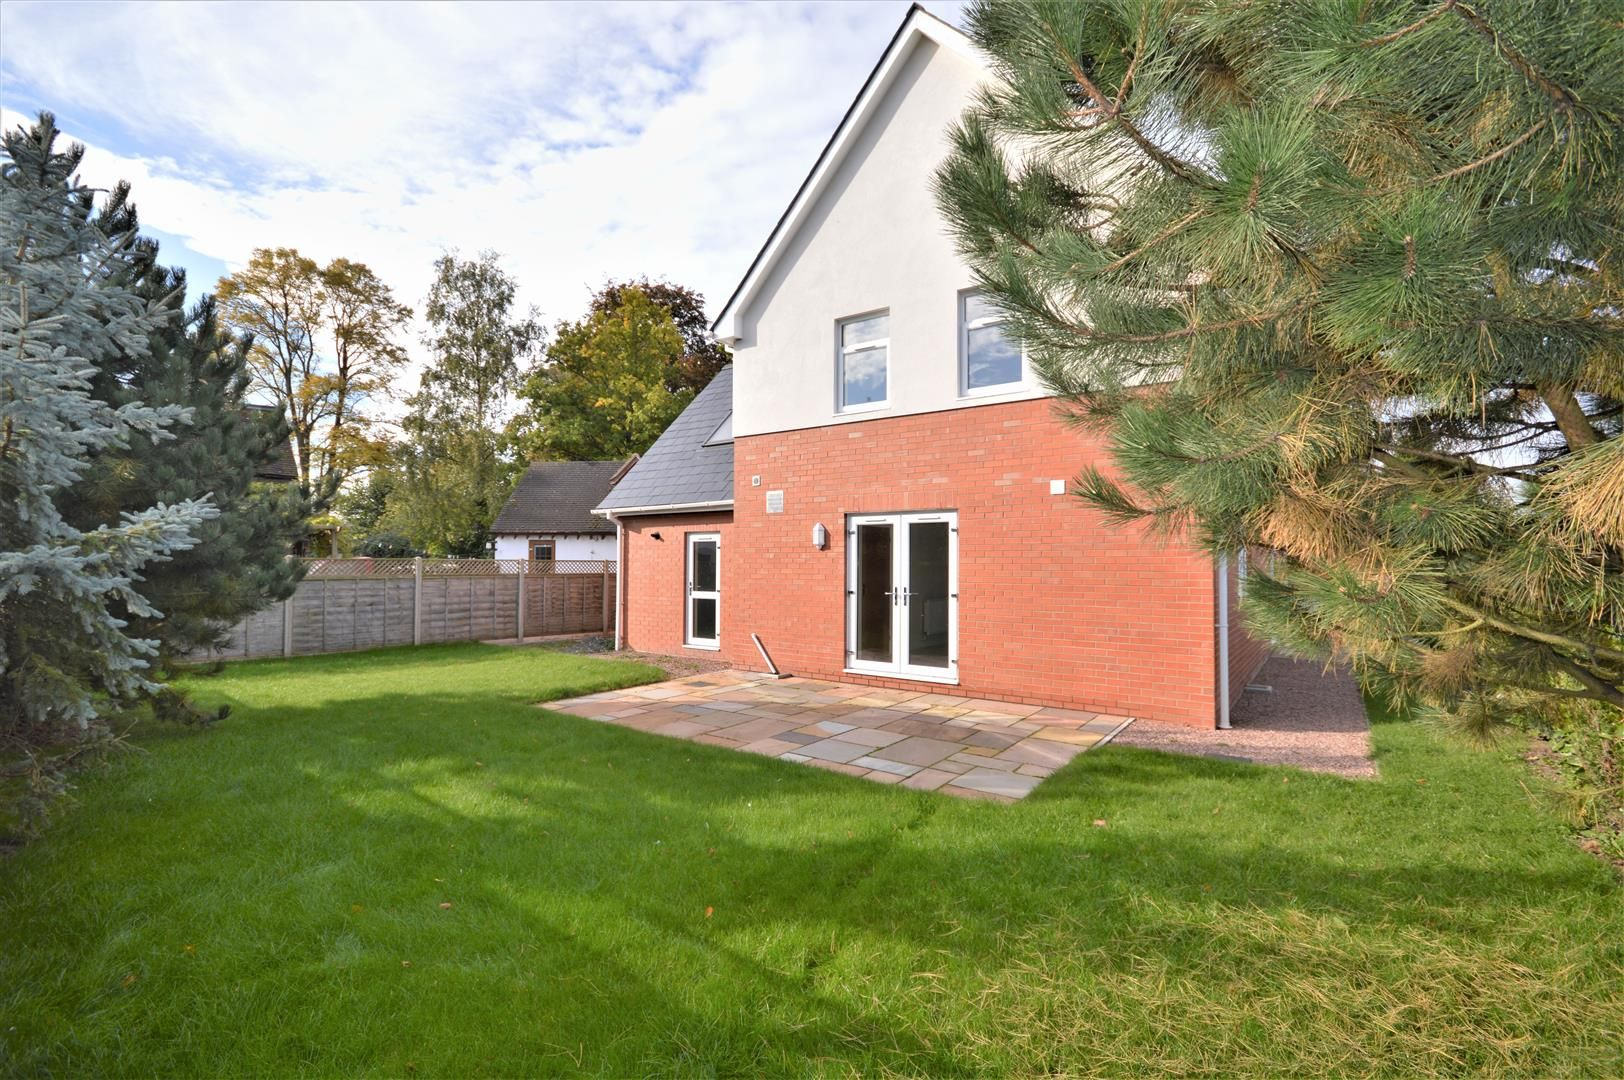 4 bed detached for sale in Kings Acre - Property Image 1